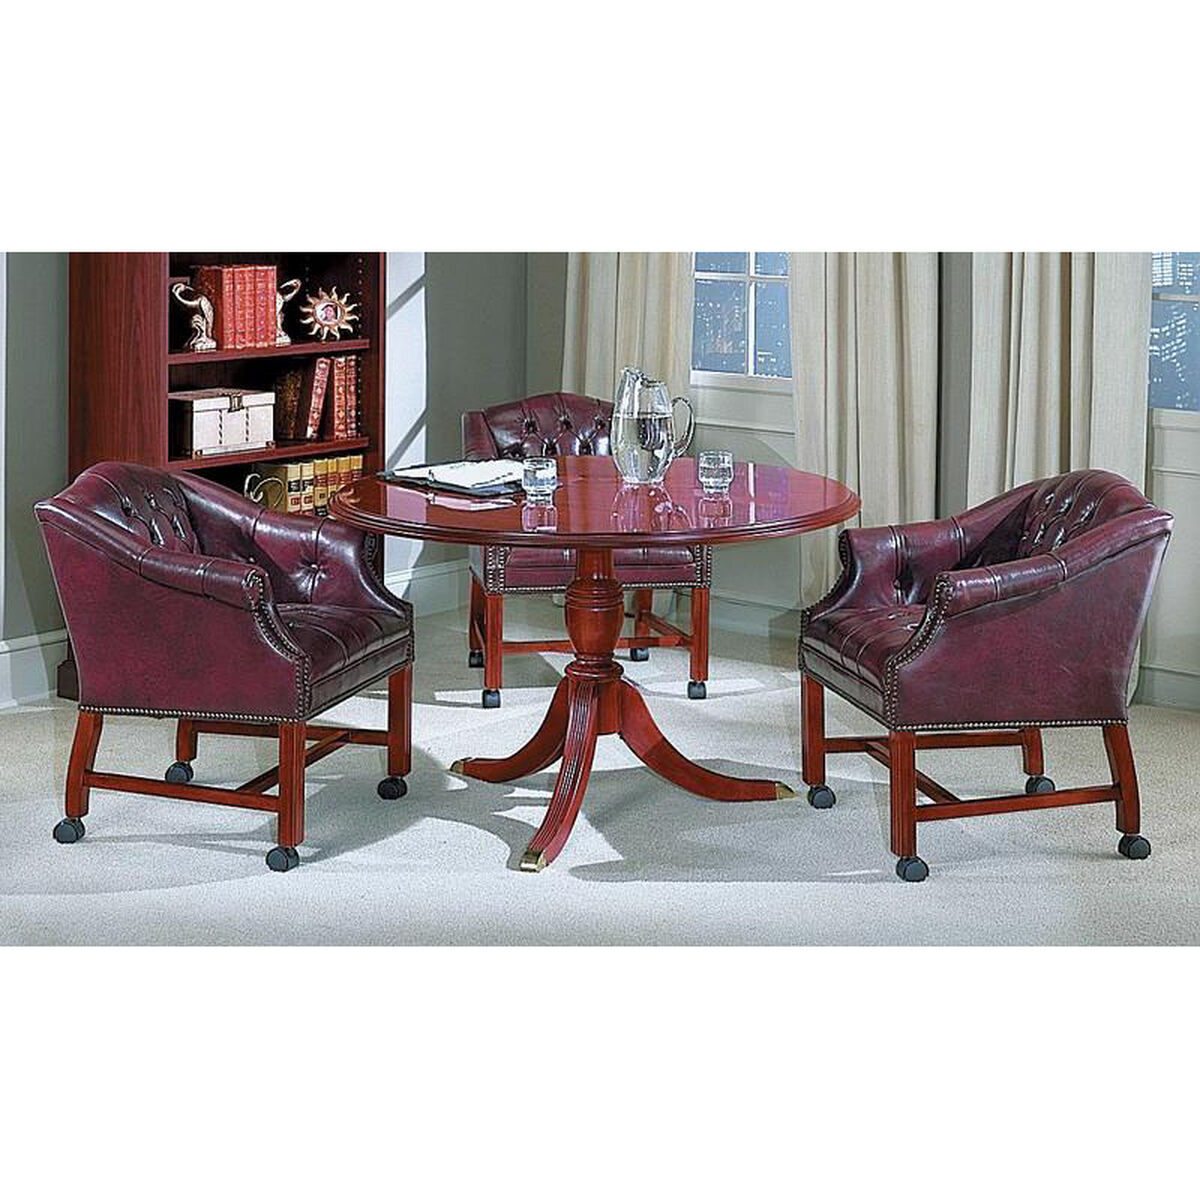 Round Conference Table TRTR Bizchaircom - Pedestal conference table